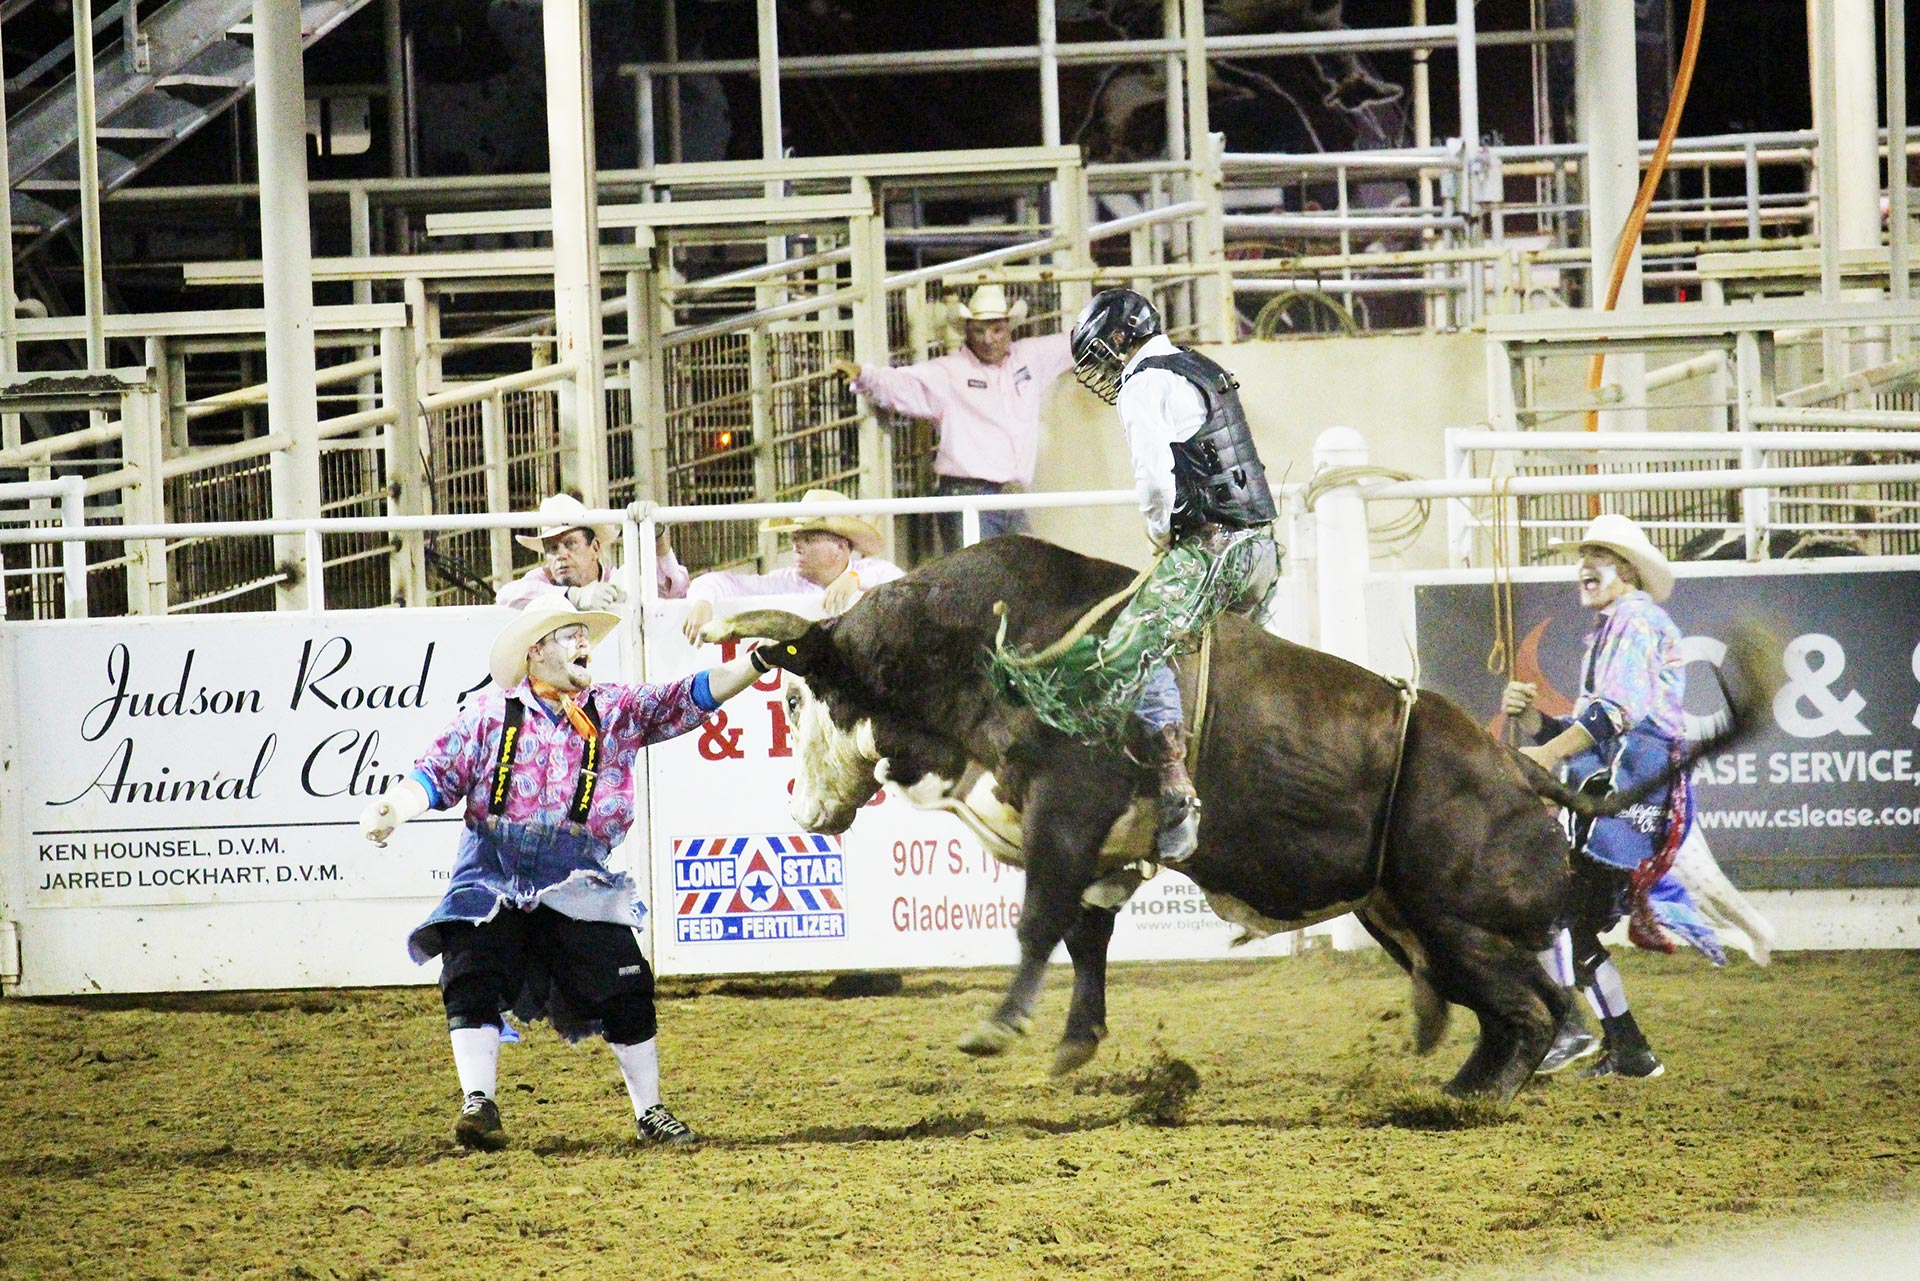 Bull fighter & bull ride